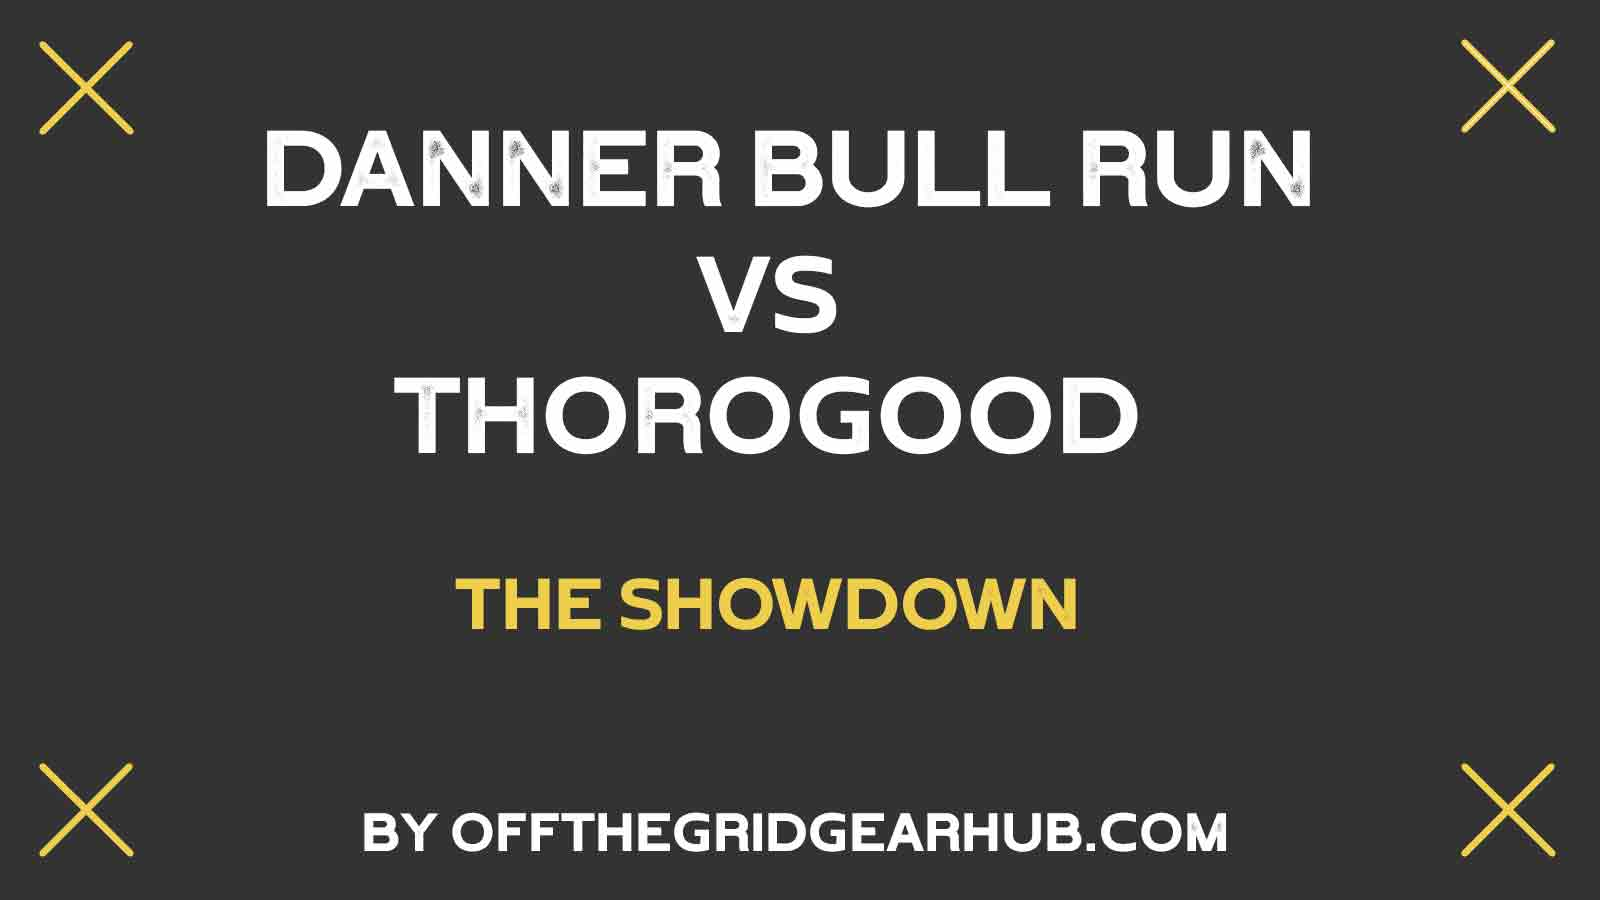 Danner Bull Run vs Thorogood